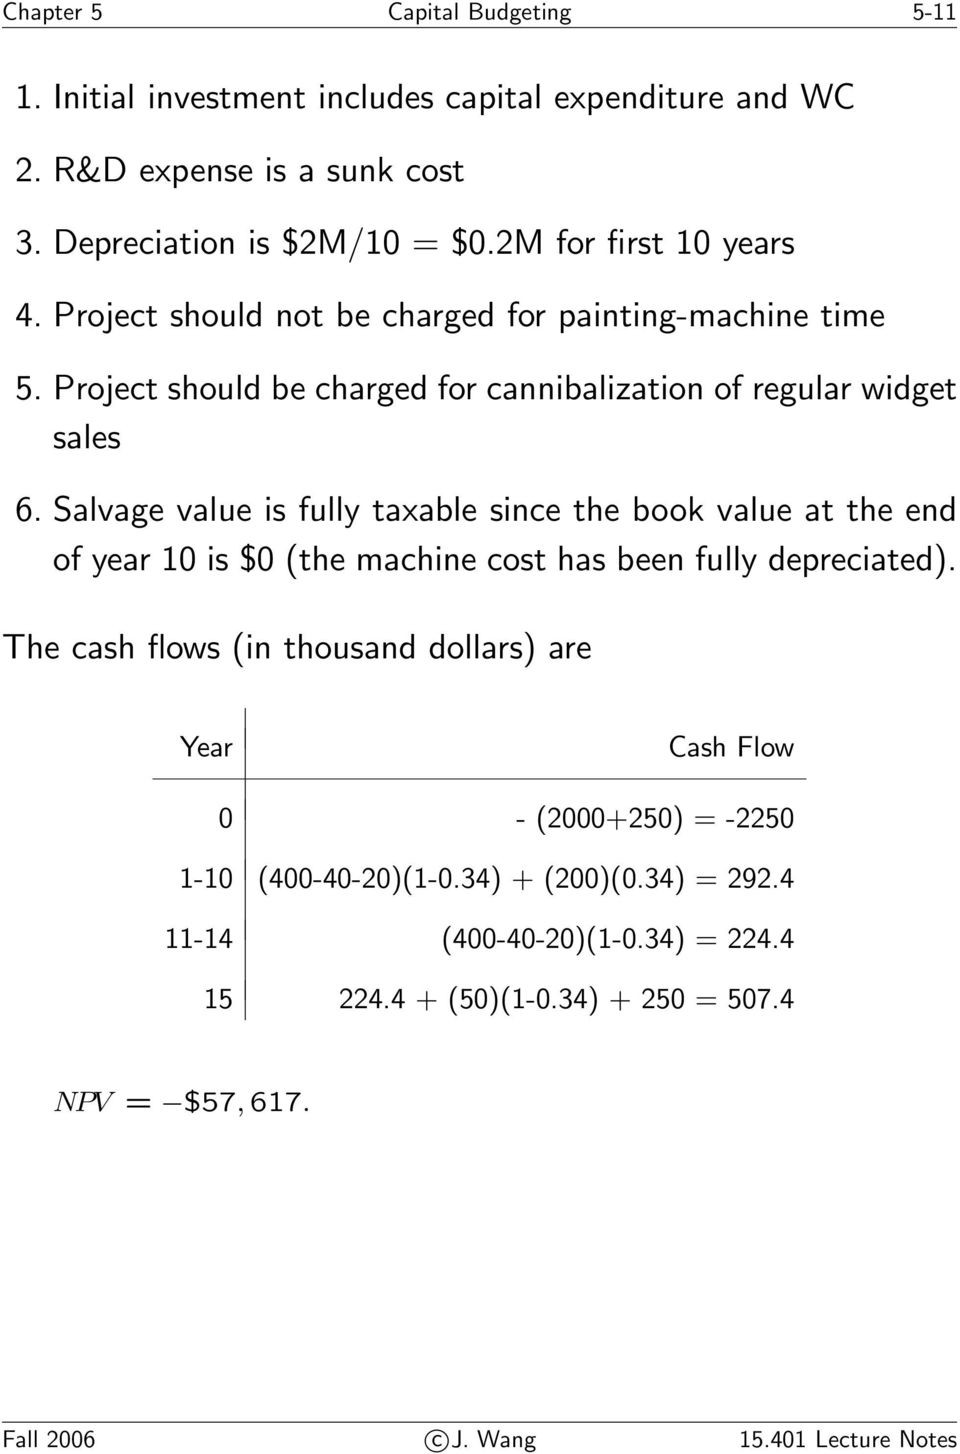 Salvage value is fully taxable since the book value at the end of year 10 is $0 (the machine cost has been fully depreciated).